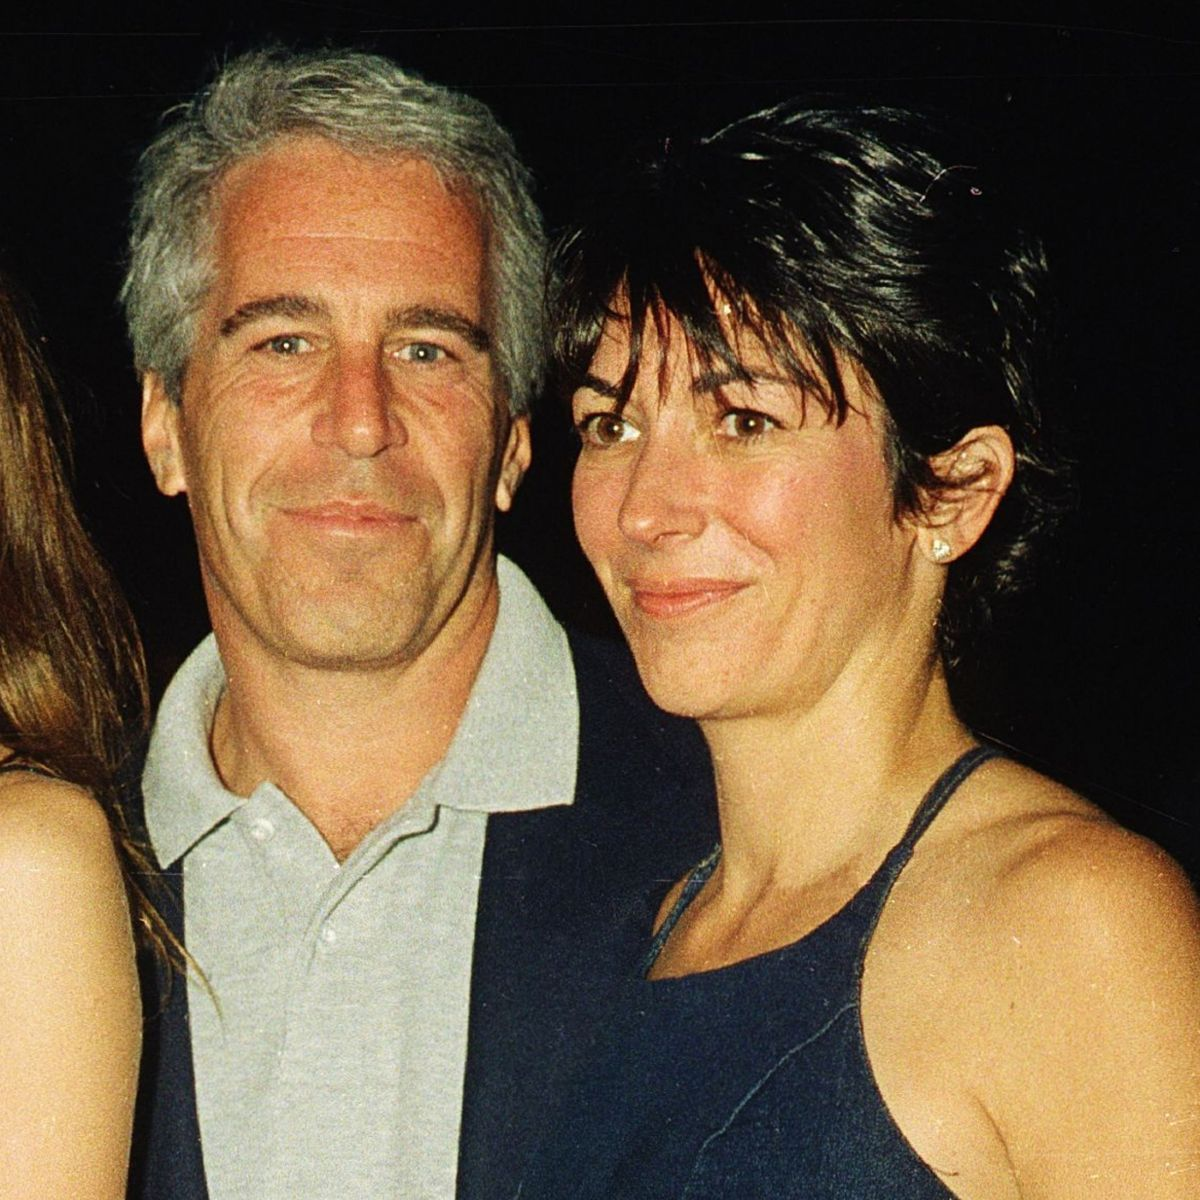 There's also the expectation that even more documents will be released involving Ghislaine Maxwell and Jeffrey Epstein. Here's what you need to know.